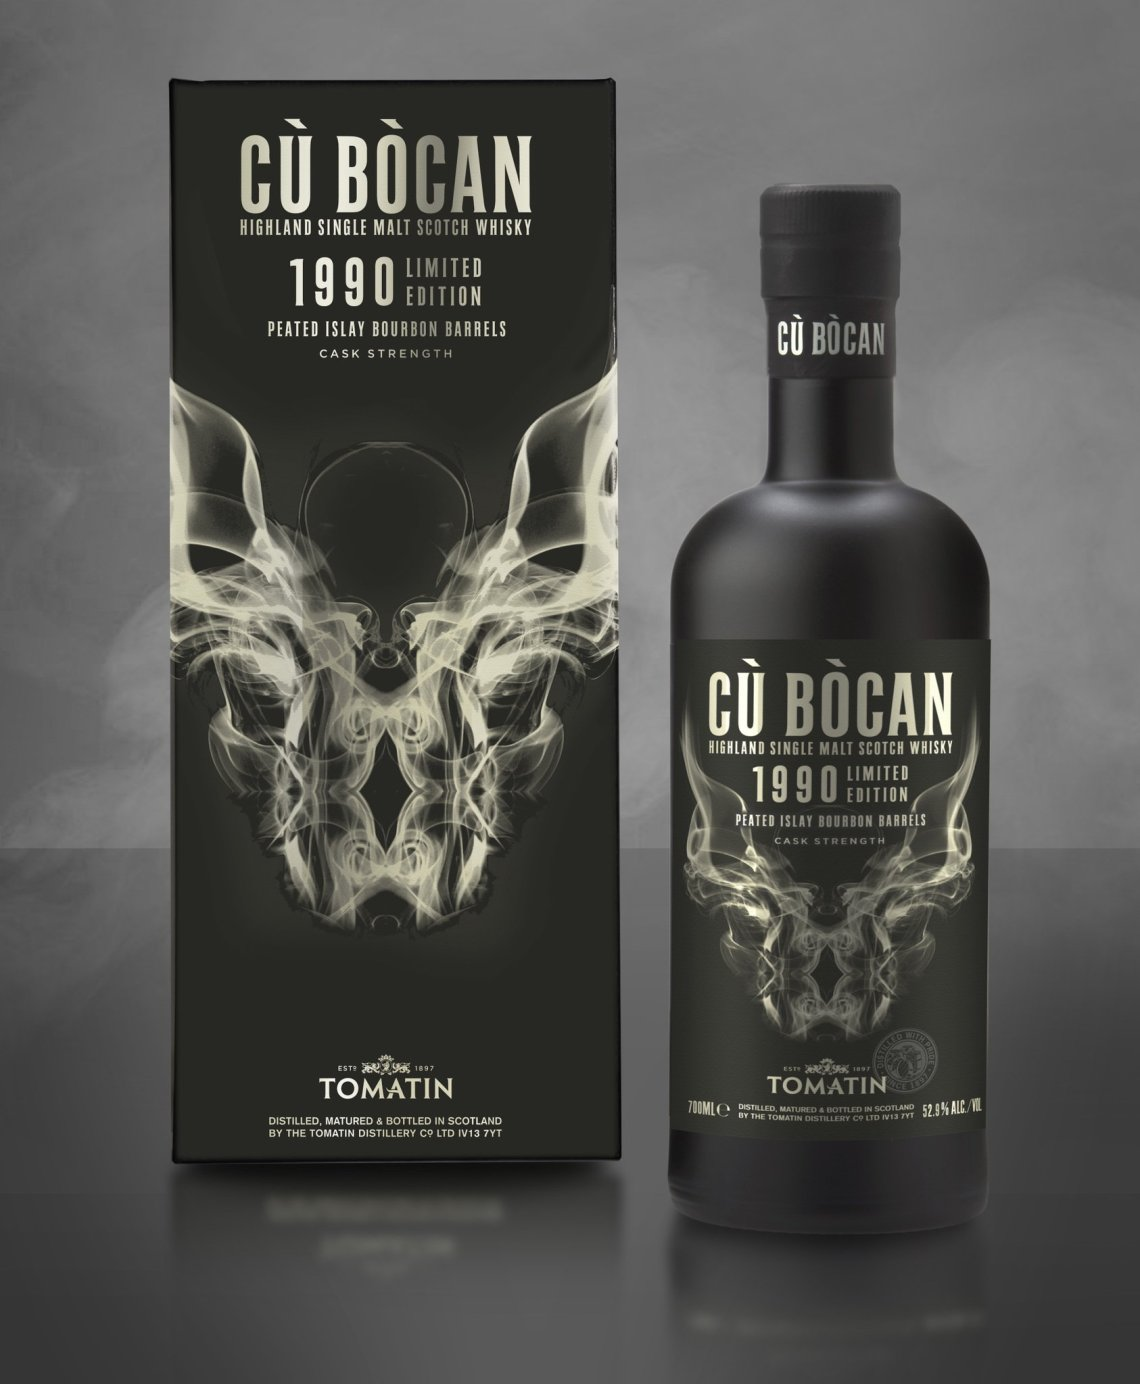 Tomatin Cu Bocan 1990 Limited Edition